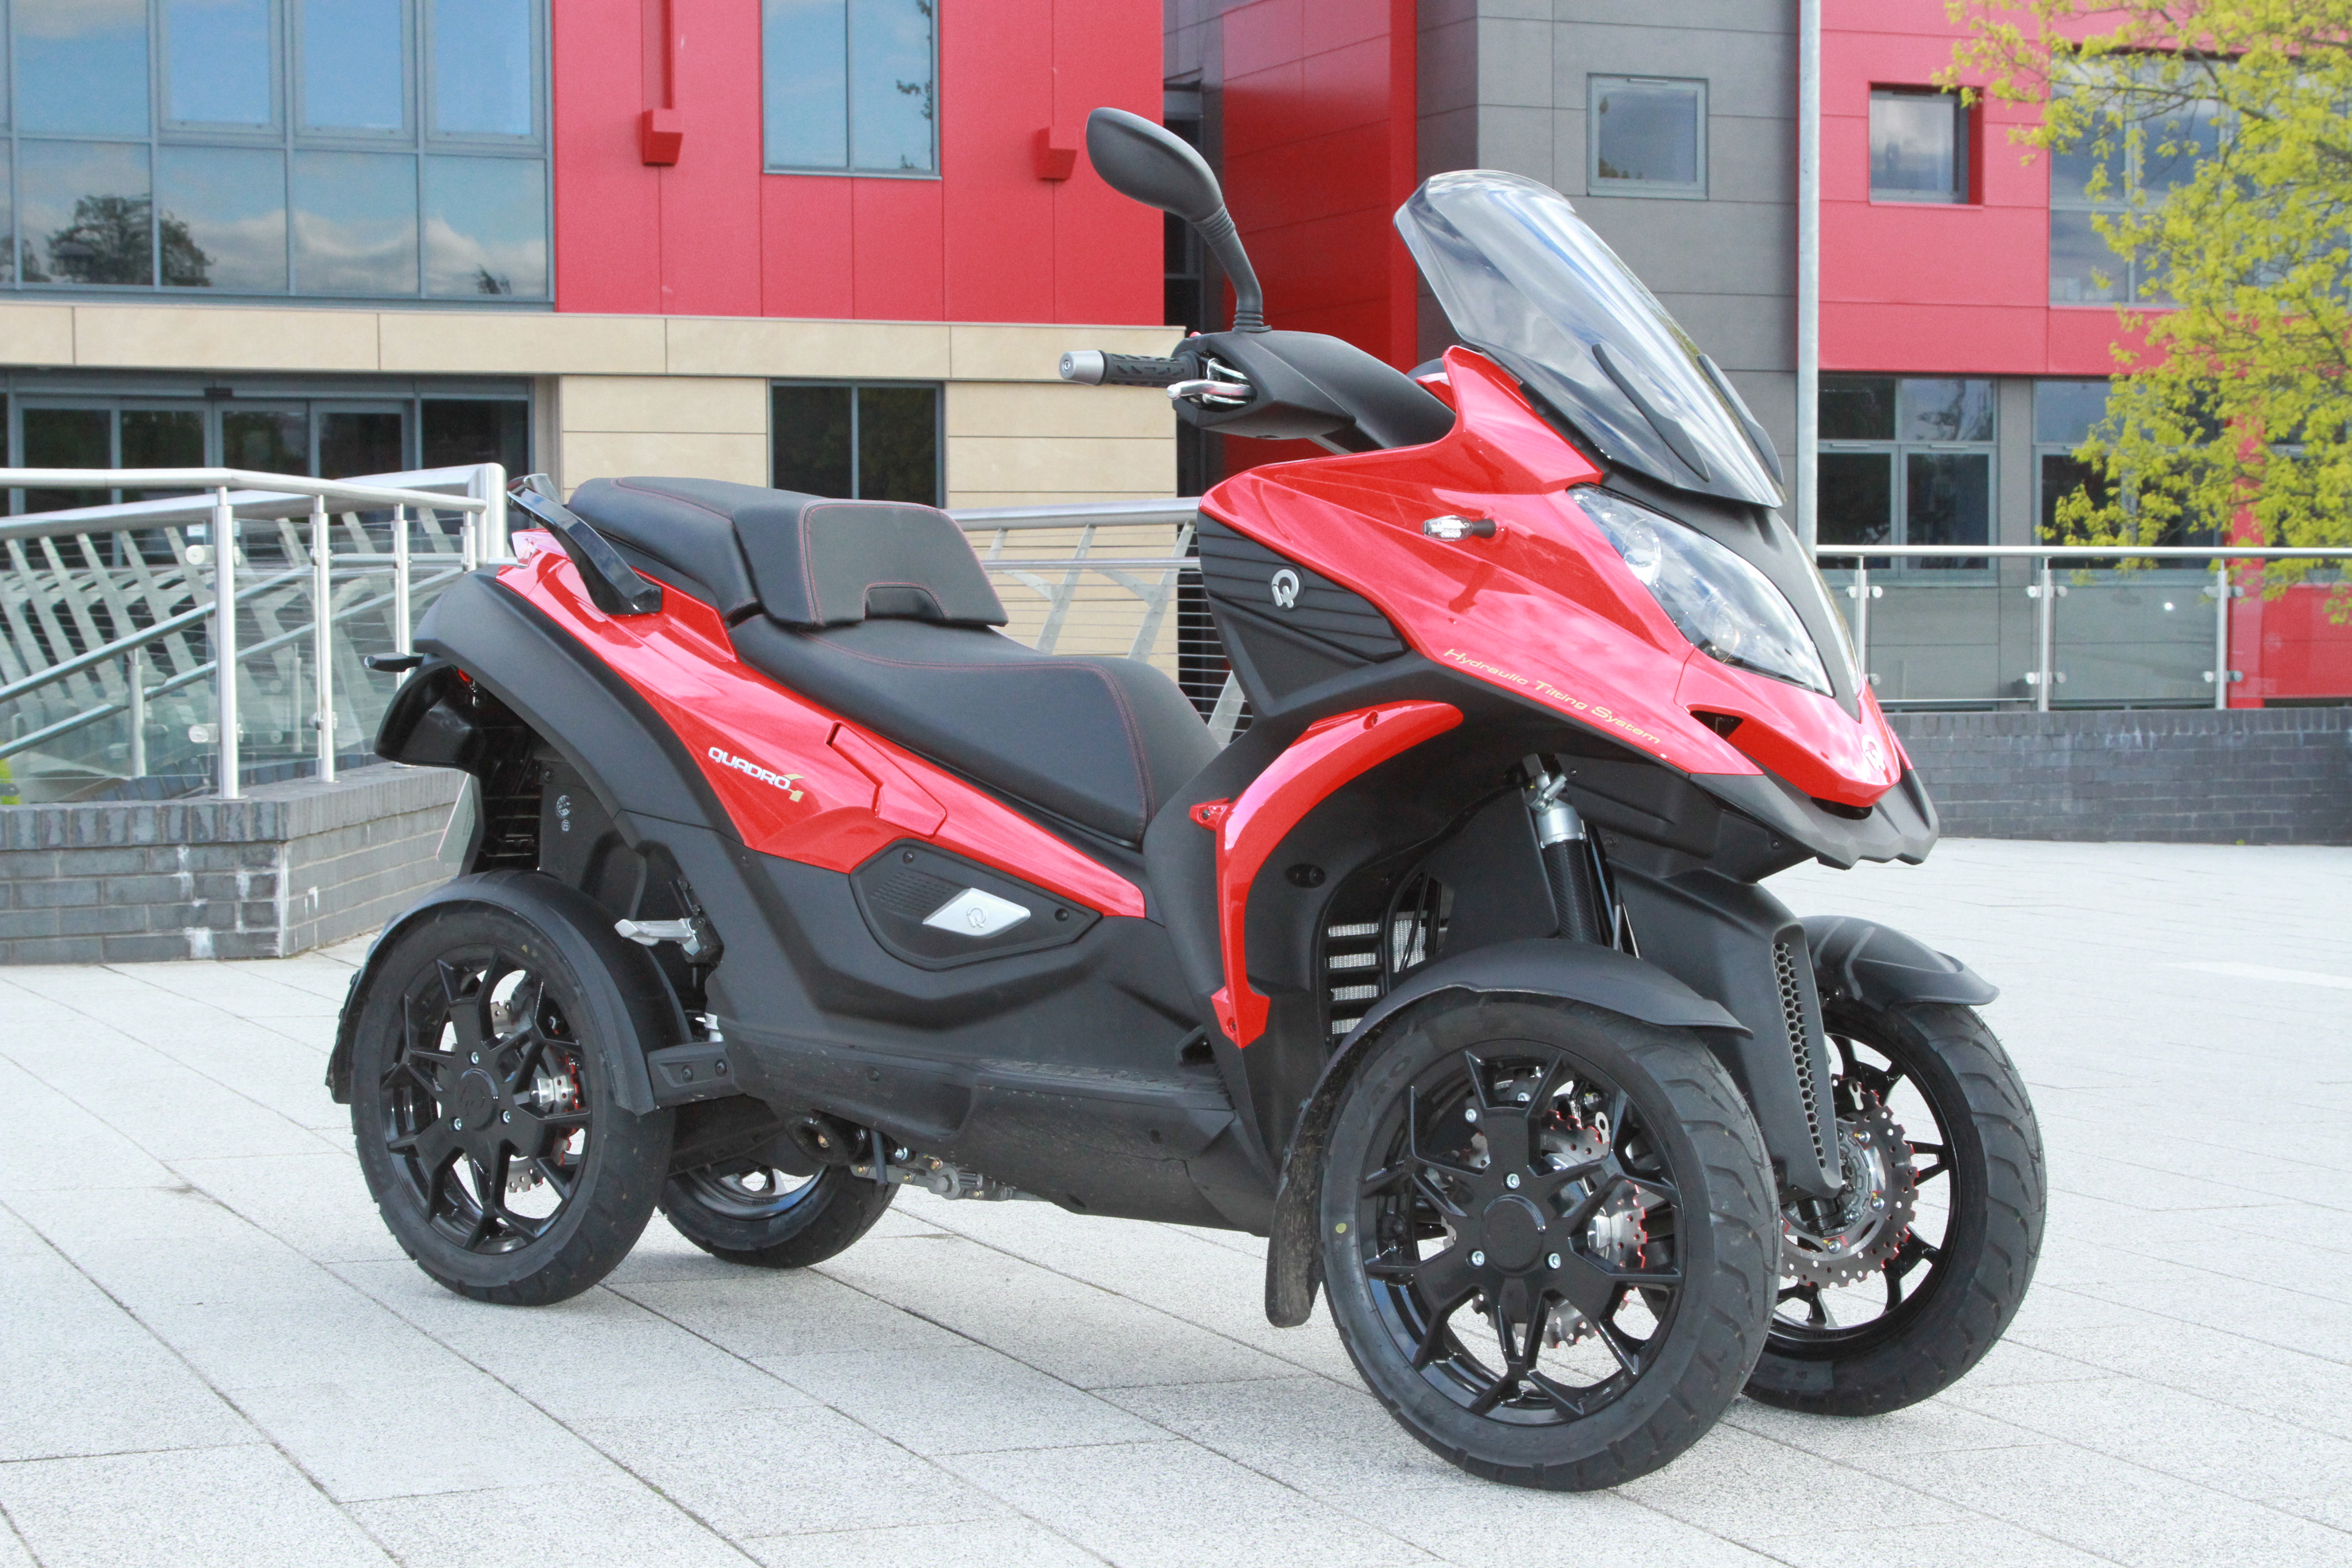 Yamaha Four Wheelers For Sale >> Quadro4: Exclusive UK first ride » Road Tests » 2Commute